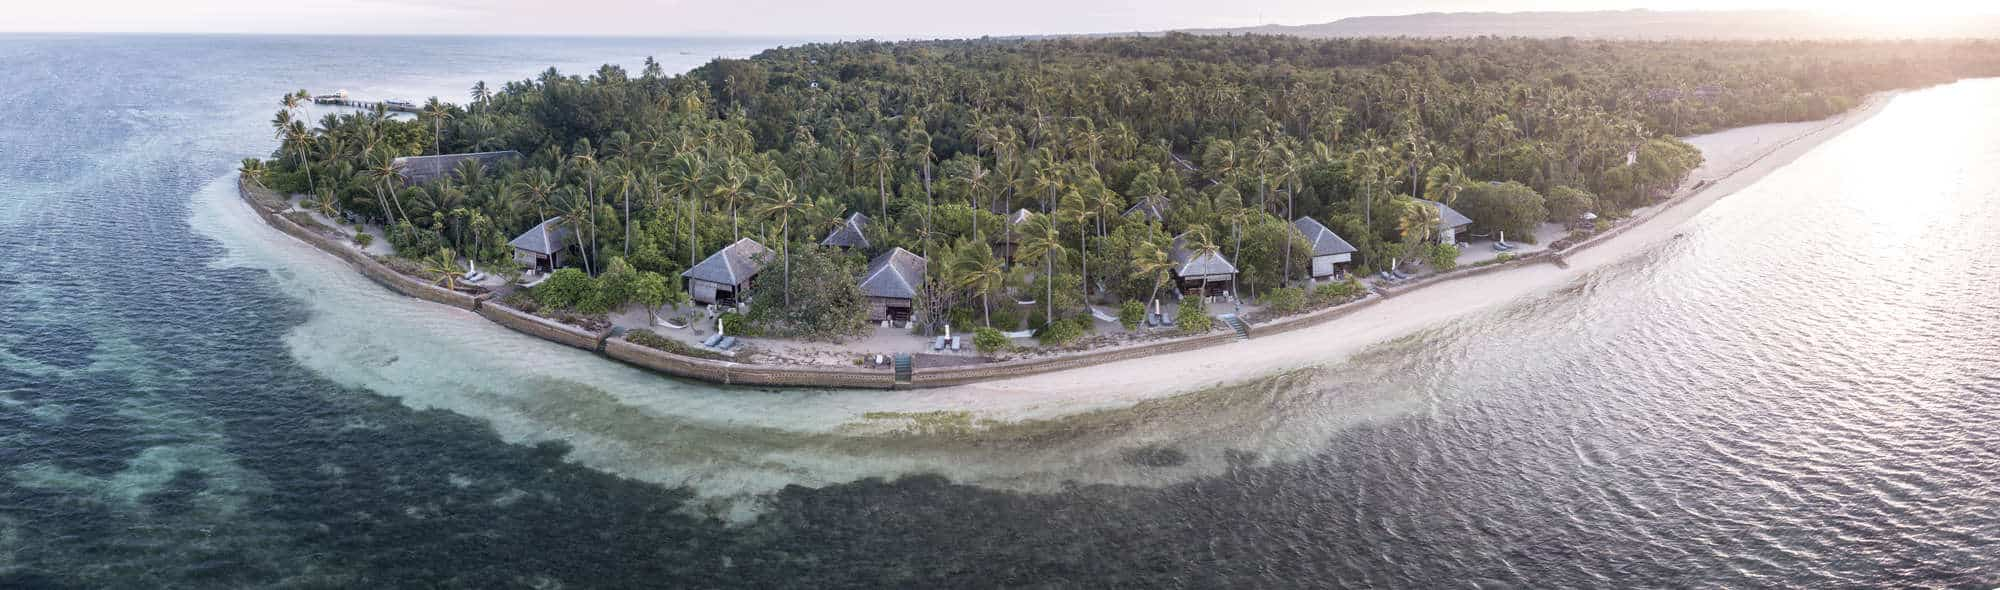 A remote resort is built on a idyllic island off the coast of Sulawesi in Indonesia. The Wakatobi resort is a favorite for scuba divers, snorkelers, and kite boarders due to its surrounding reefs and seasonal winds.